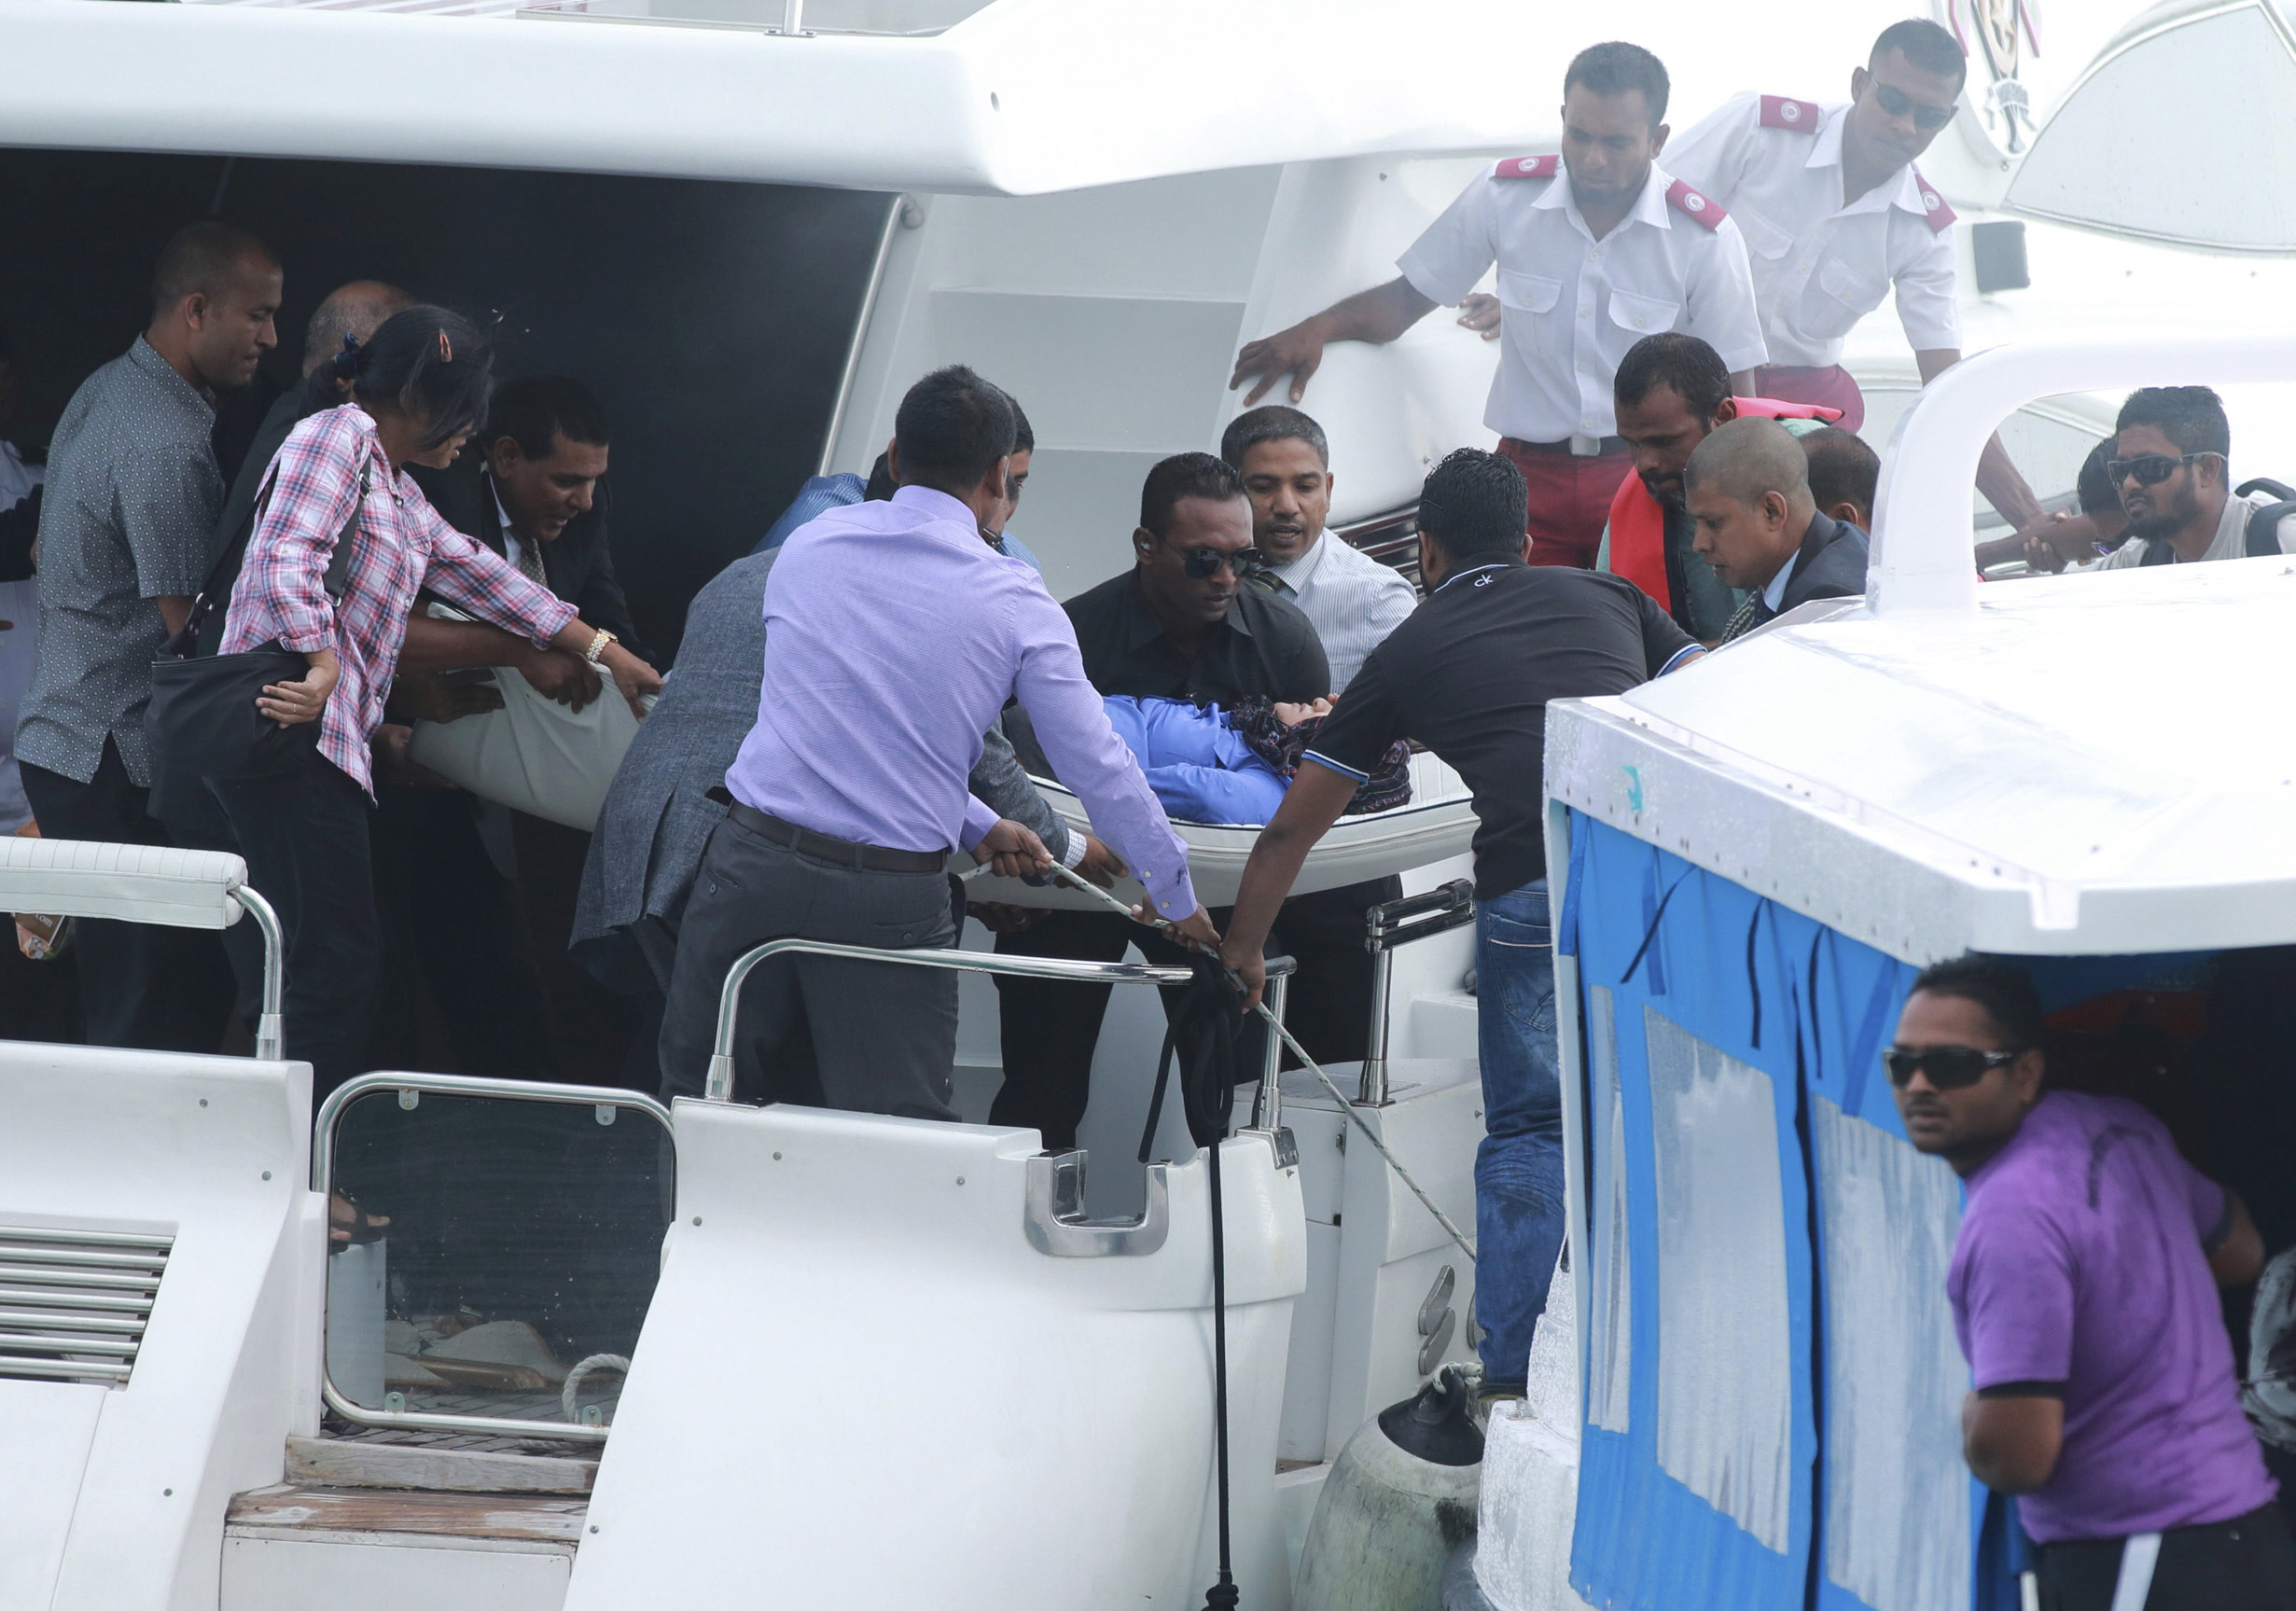 Officials carry an injured woman off the speed boat of Maldives President Abdulla Yameen (not pictured) after an explosion on board, in Male, Maldives, on Sept. 28, 2015